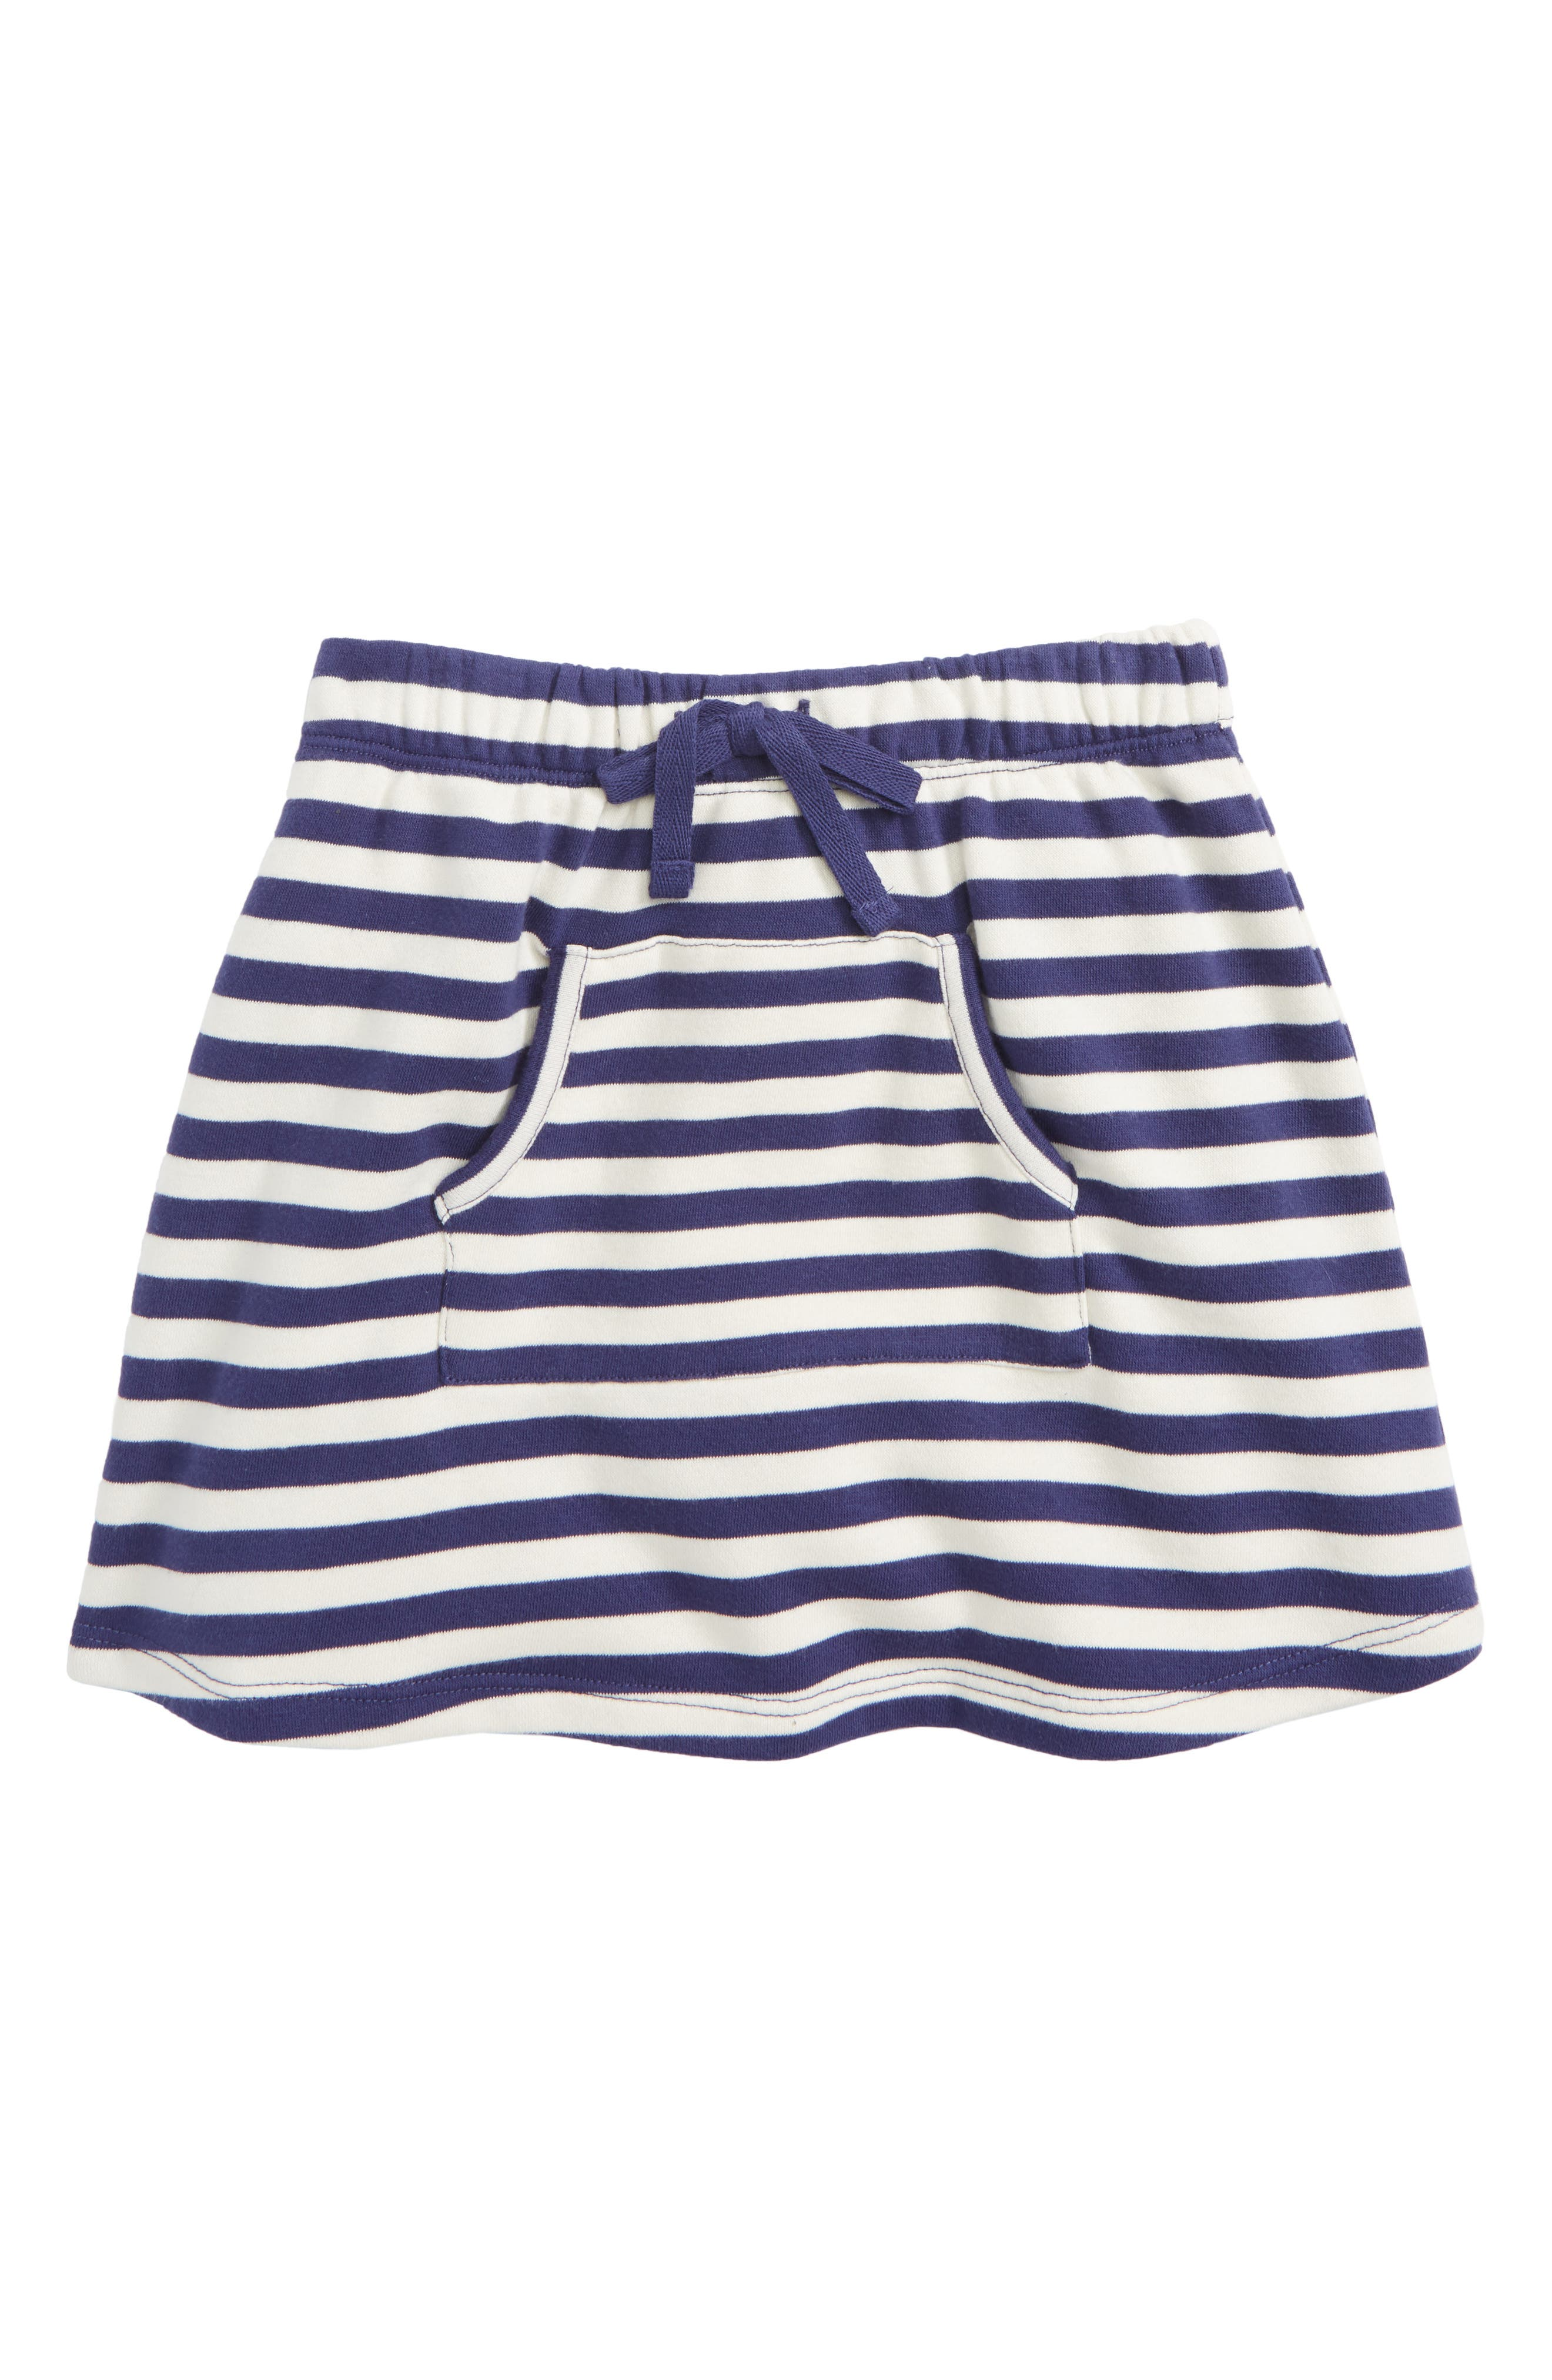 Tucker + Tate Stripe Skort (Toddler Girls, Little Girls & Big Girls)